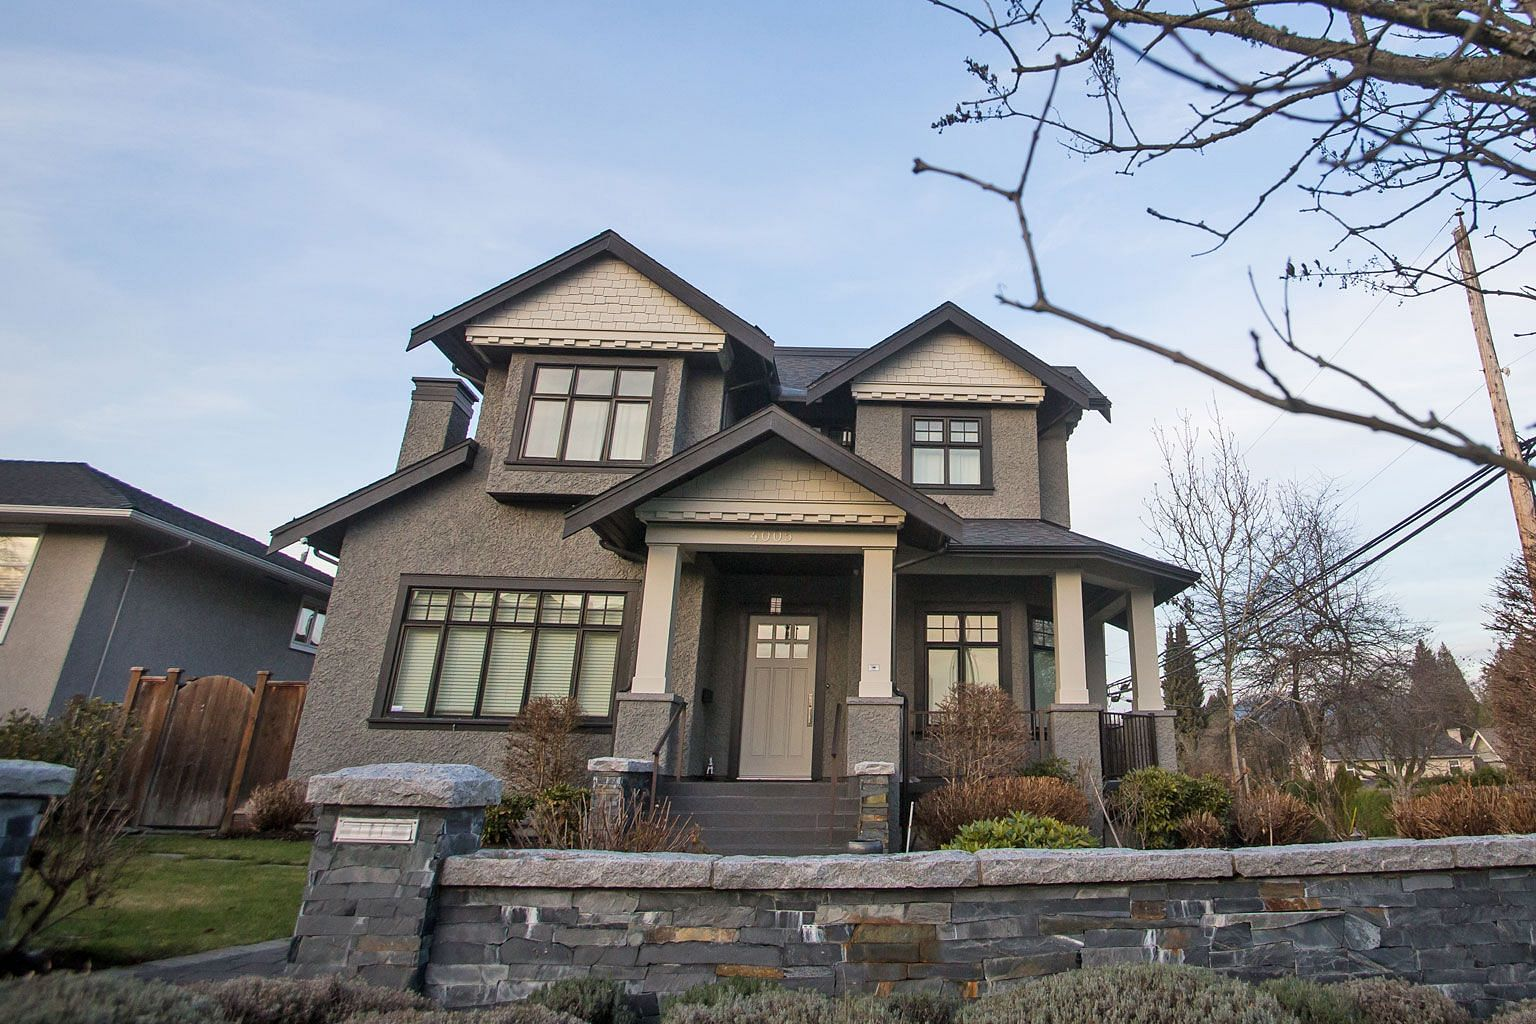 Ms Meng Wanzhou's six-bedroom house in Vancouver's Dunbar neighbourhood was most recently assessed at $6 million. According to an affidavit, Ms Meng and her husband bought the house in 2009.